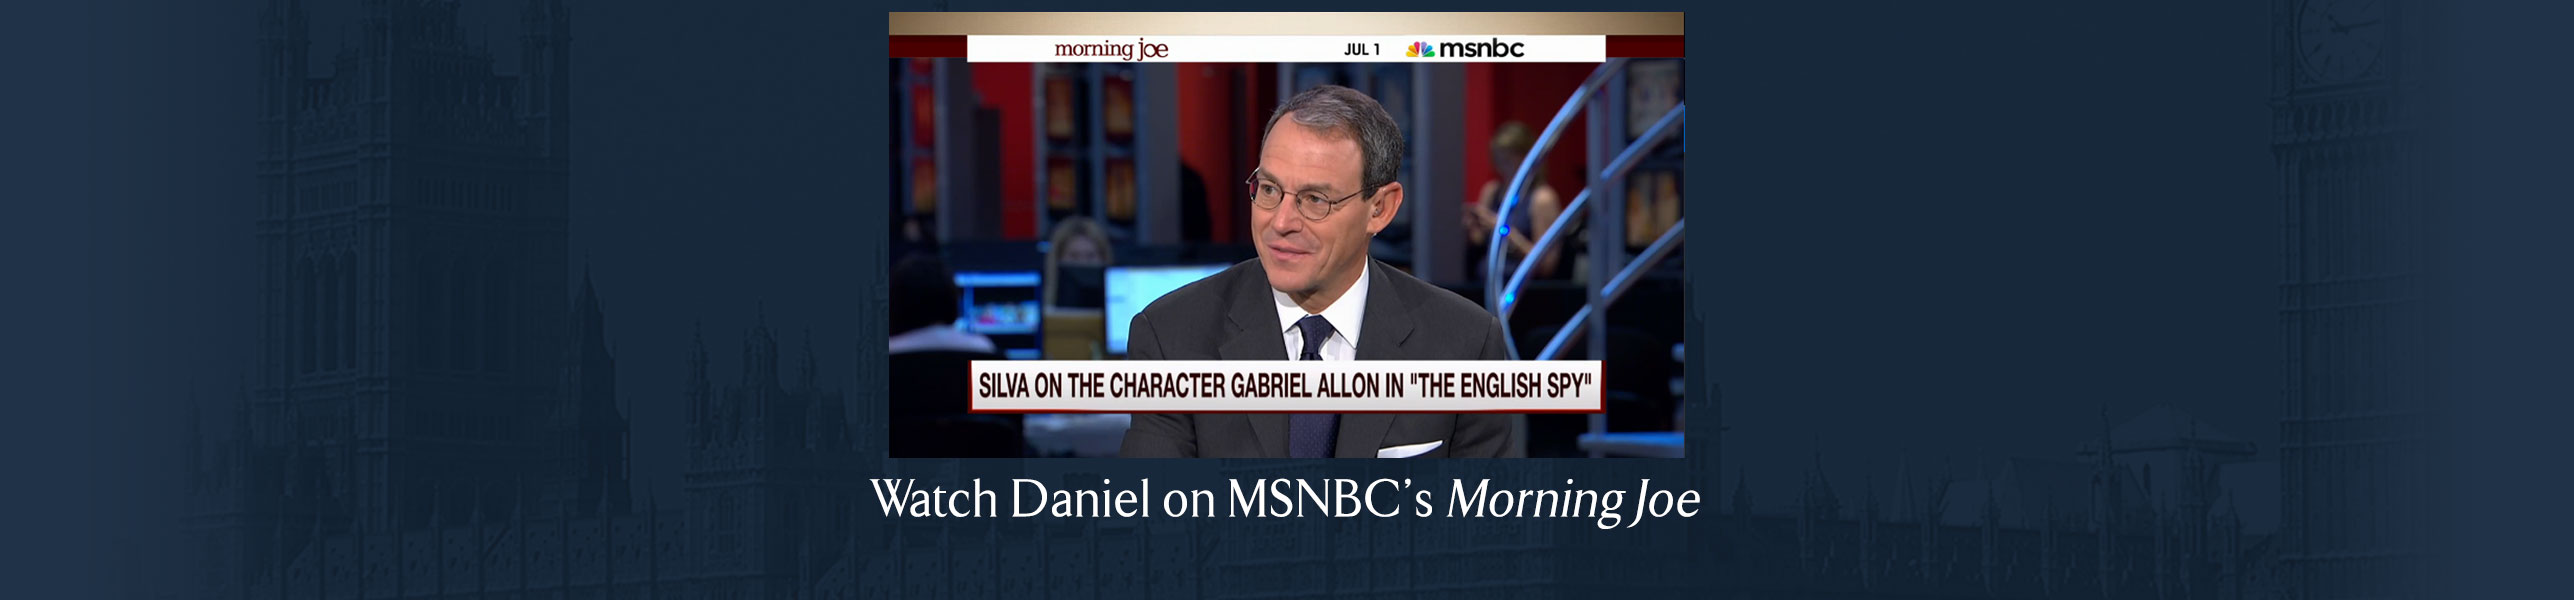 Daniel Silva visits Morning Joe to discuss The English Spy and more